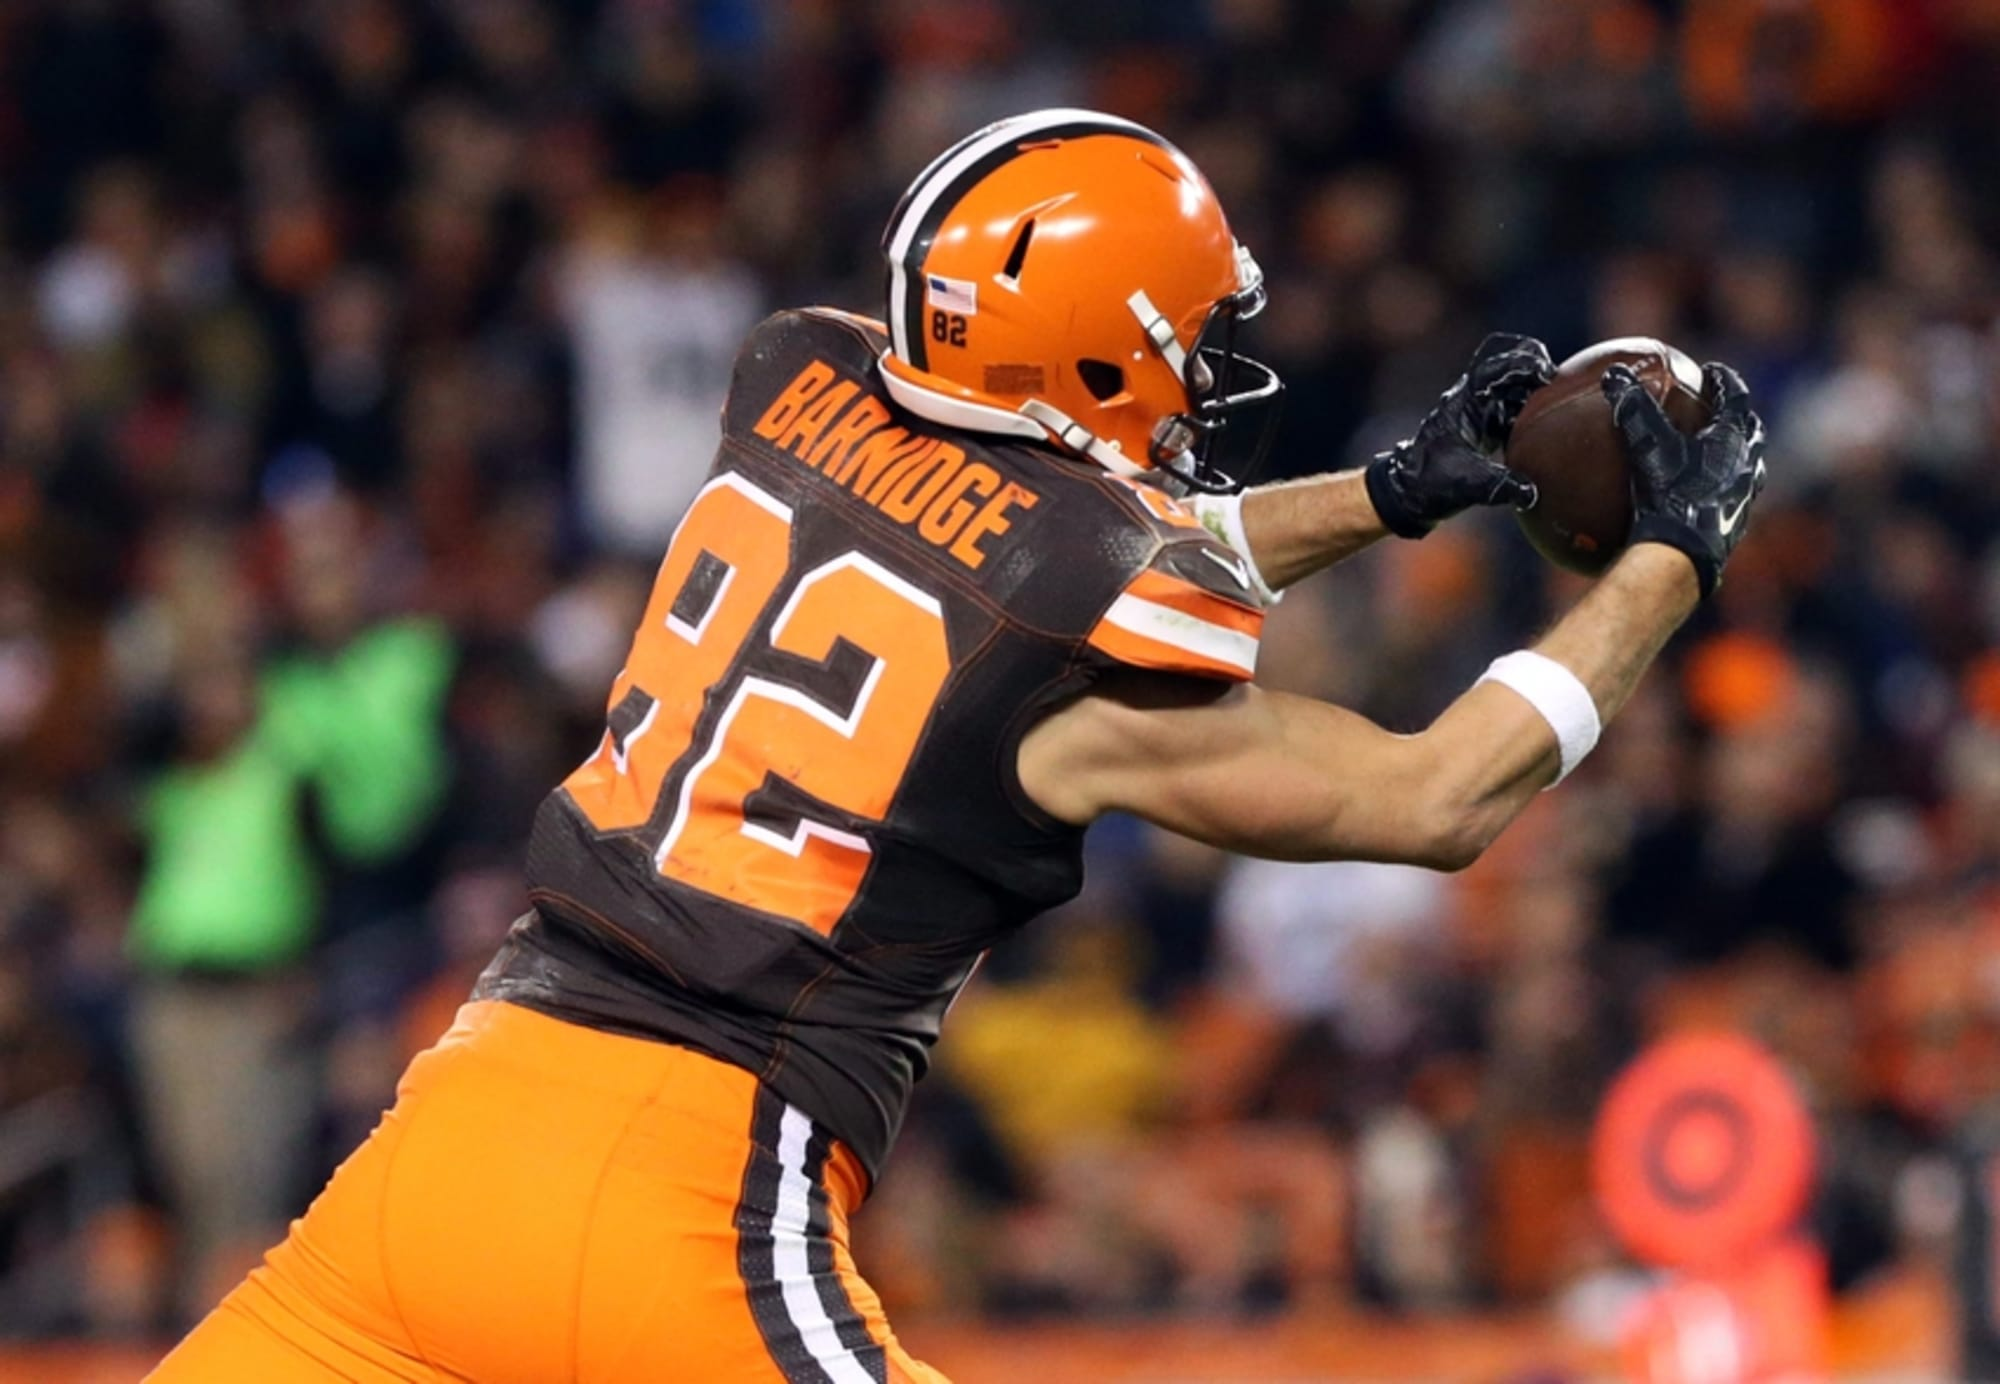 Cleveland Browns: Gary Barnidge Is Going To The Pro Bowl